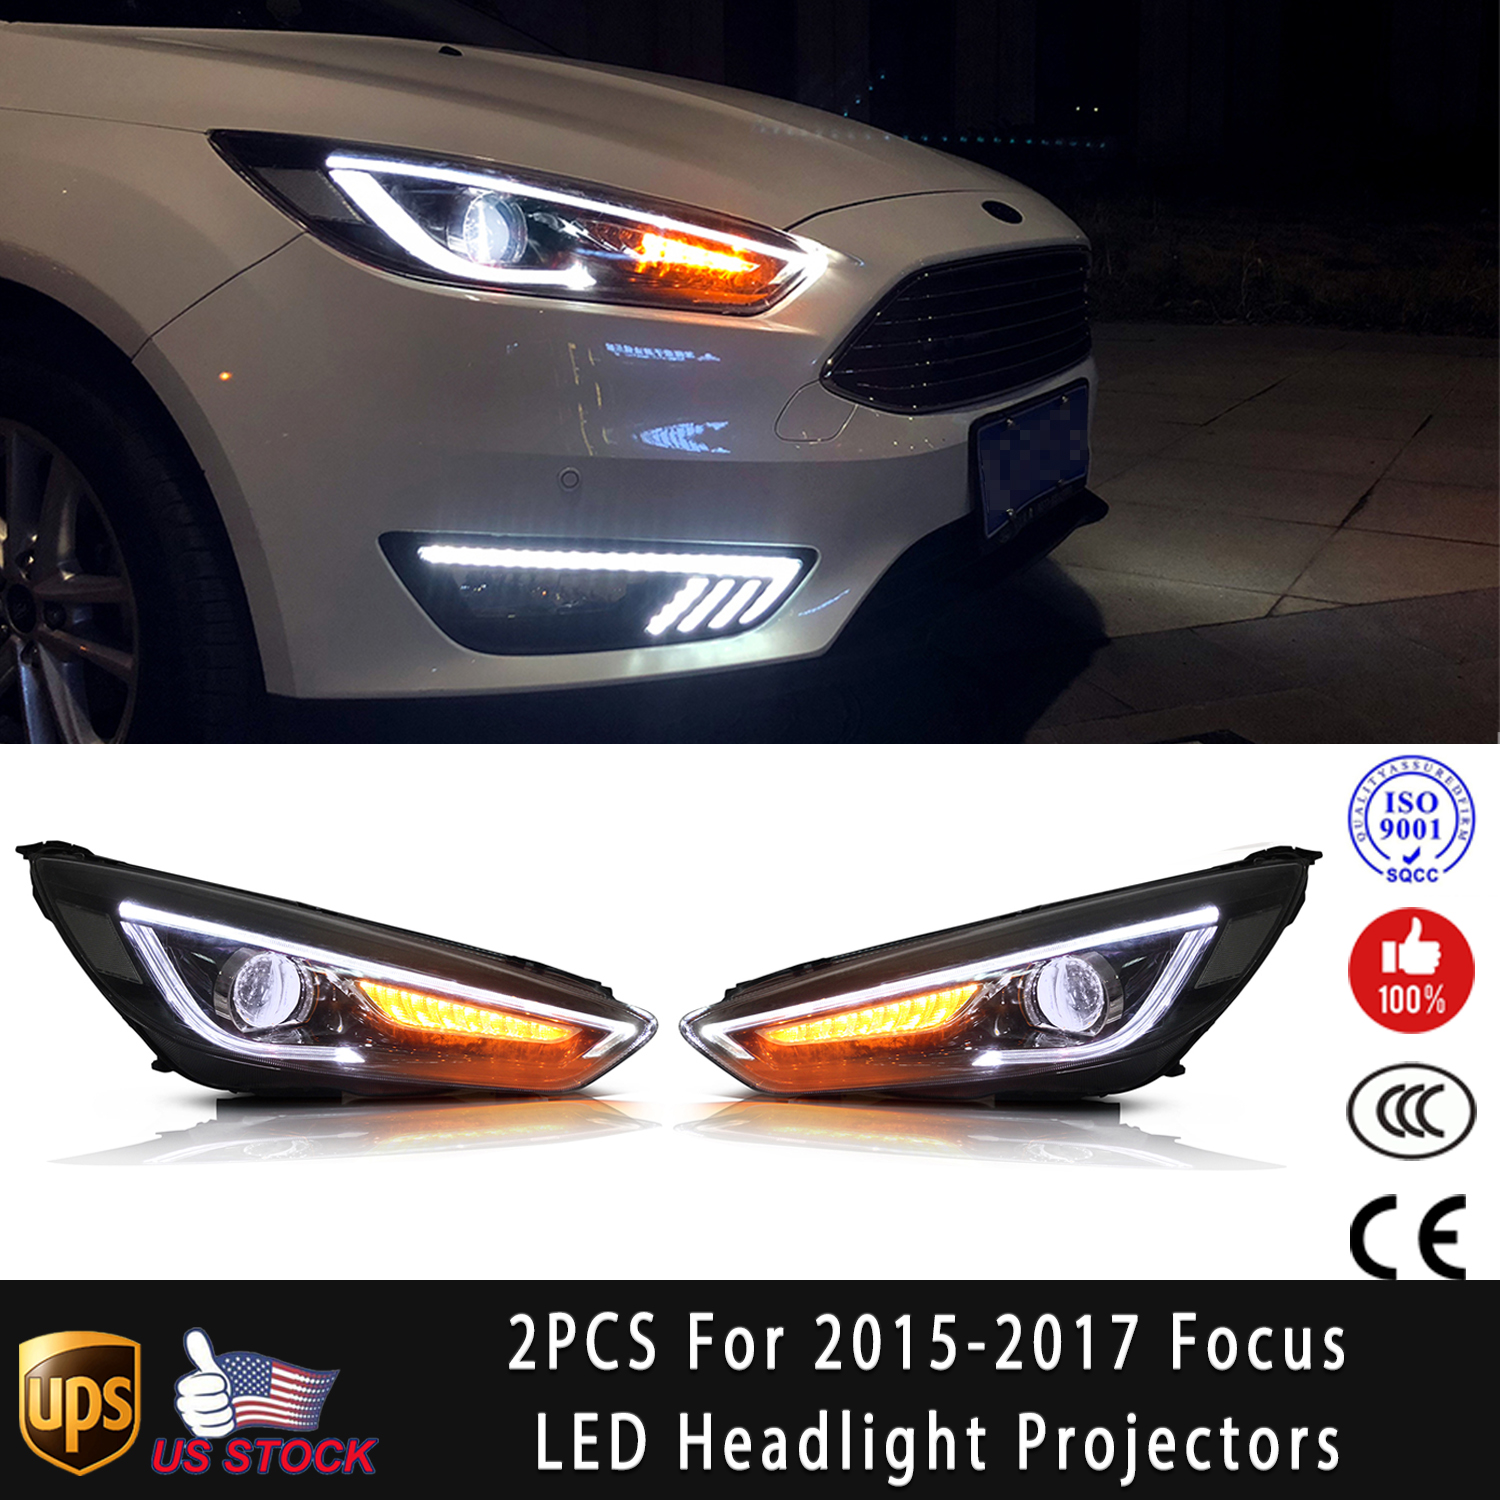 ITEM DESCRIPTION. Fitment: For 2015 2016 2017 Ford Focus Headlights Front  Car Lamp Projector